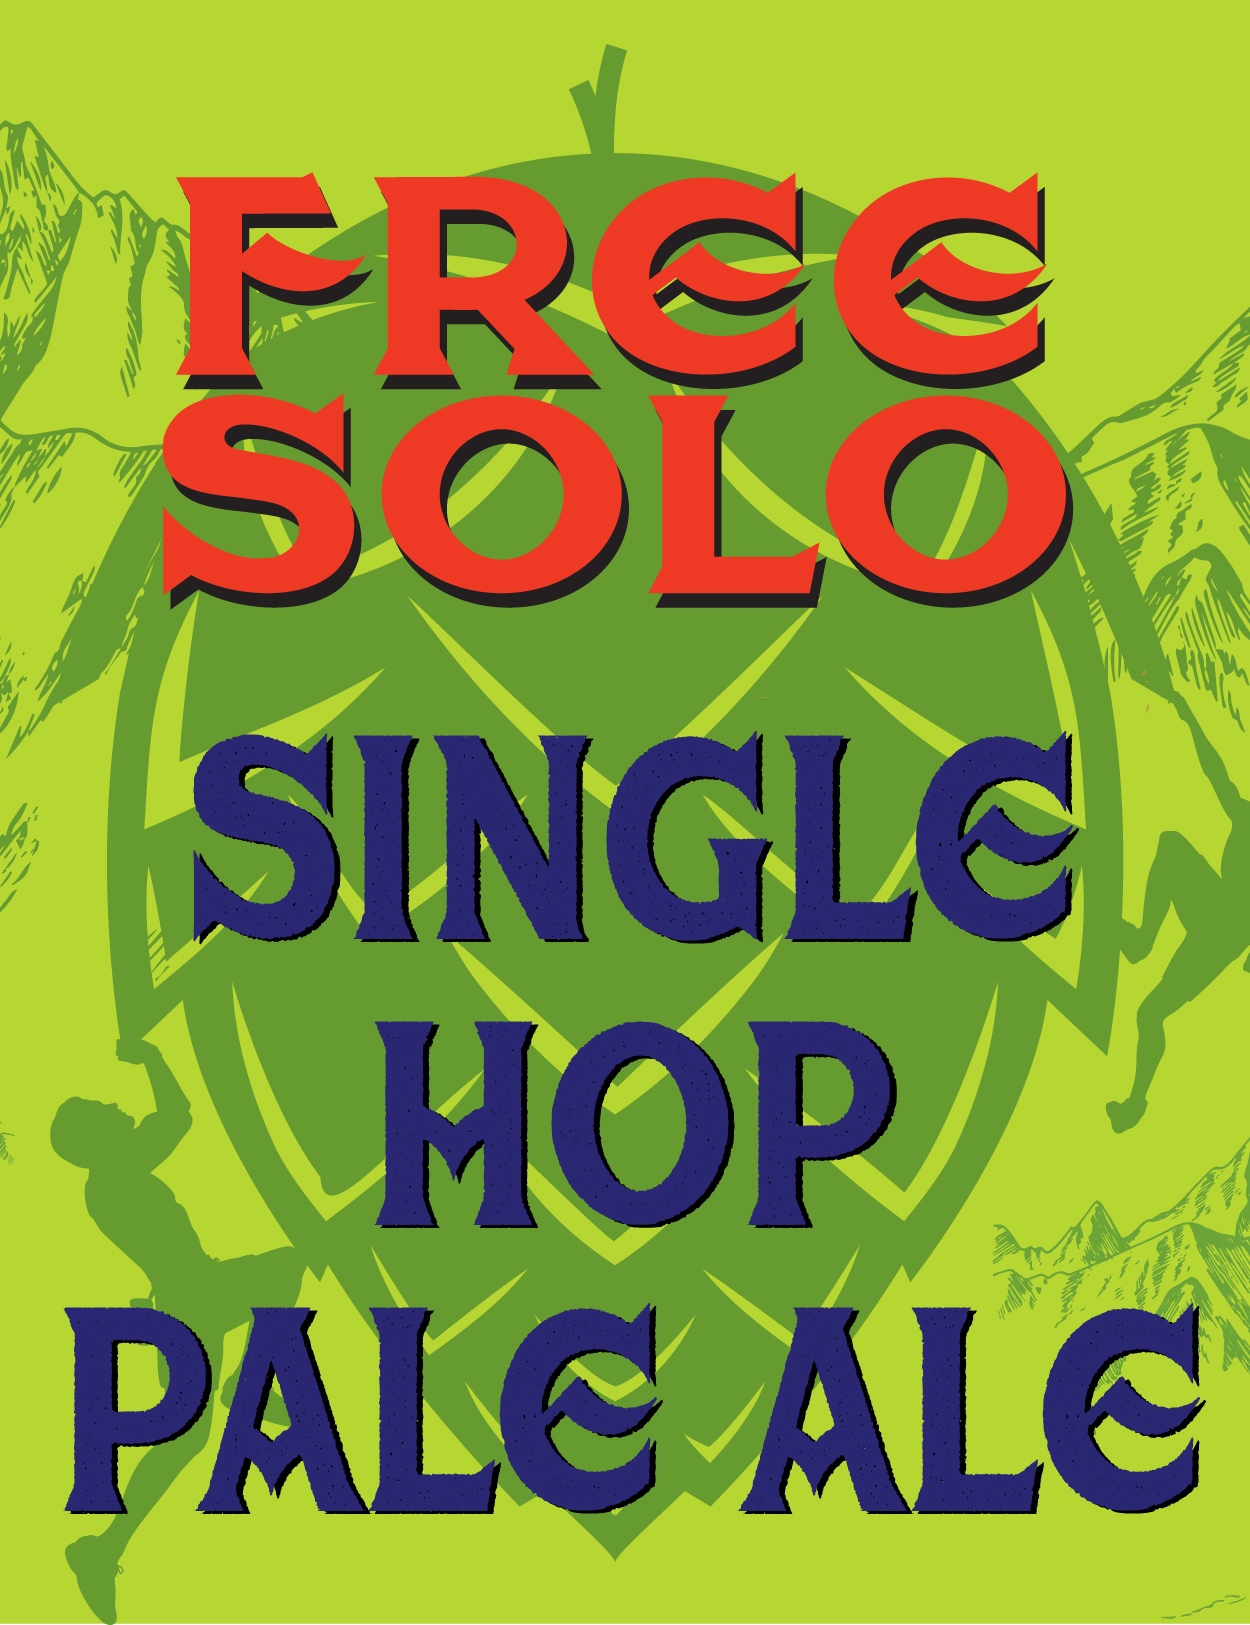 Free Solo Single Hop_Tap Handle